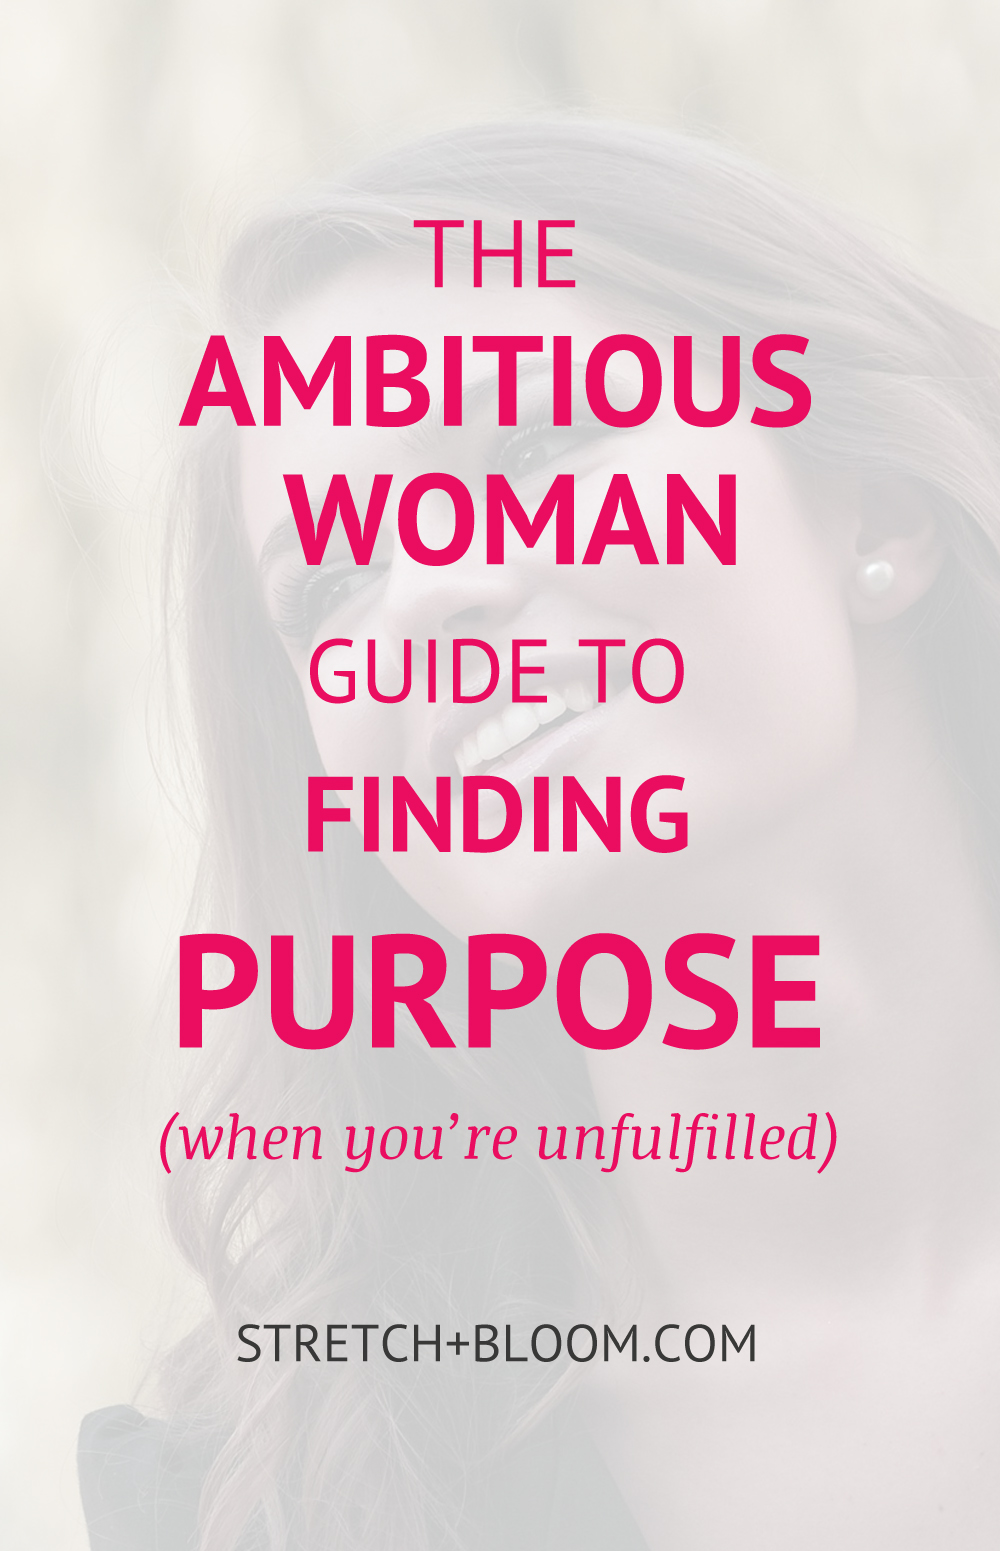 The ambitious woman guide to purpose when you' feel unfulfilled